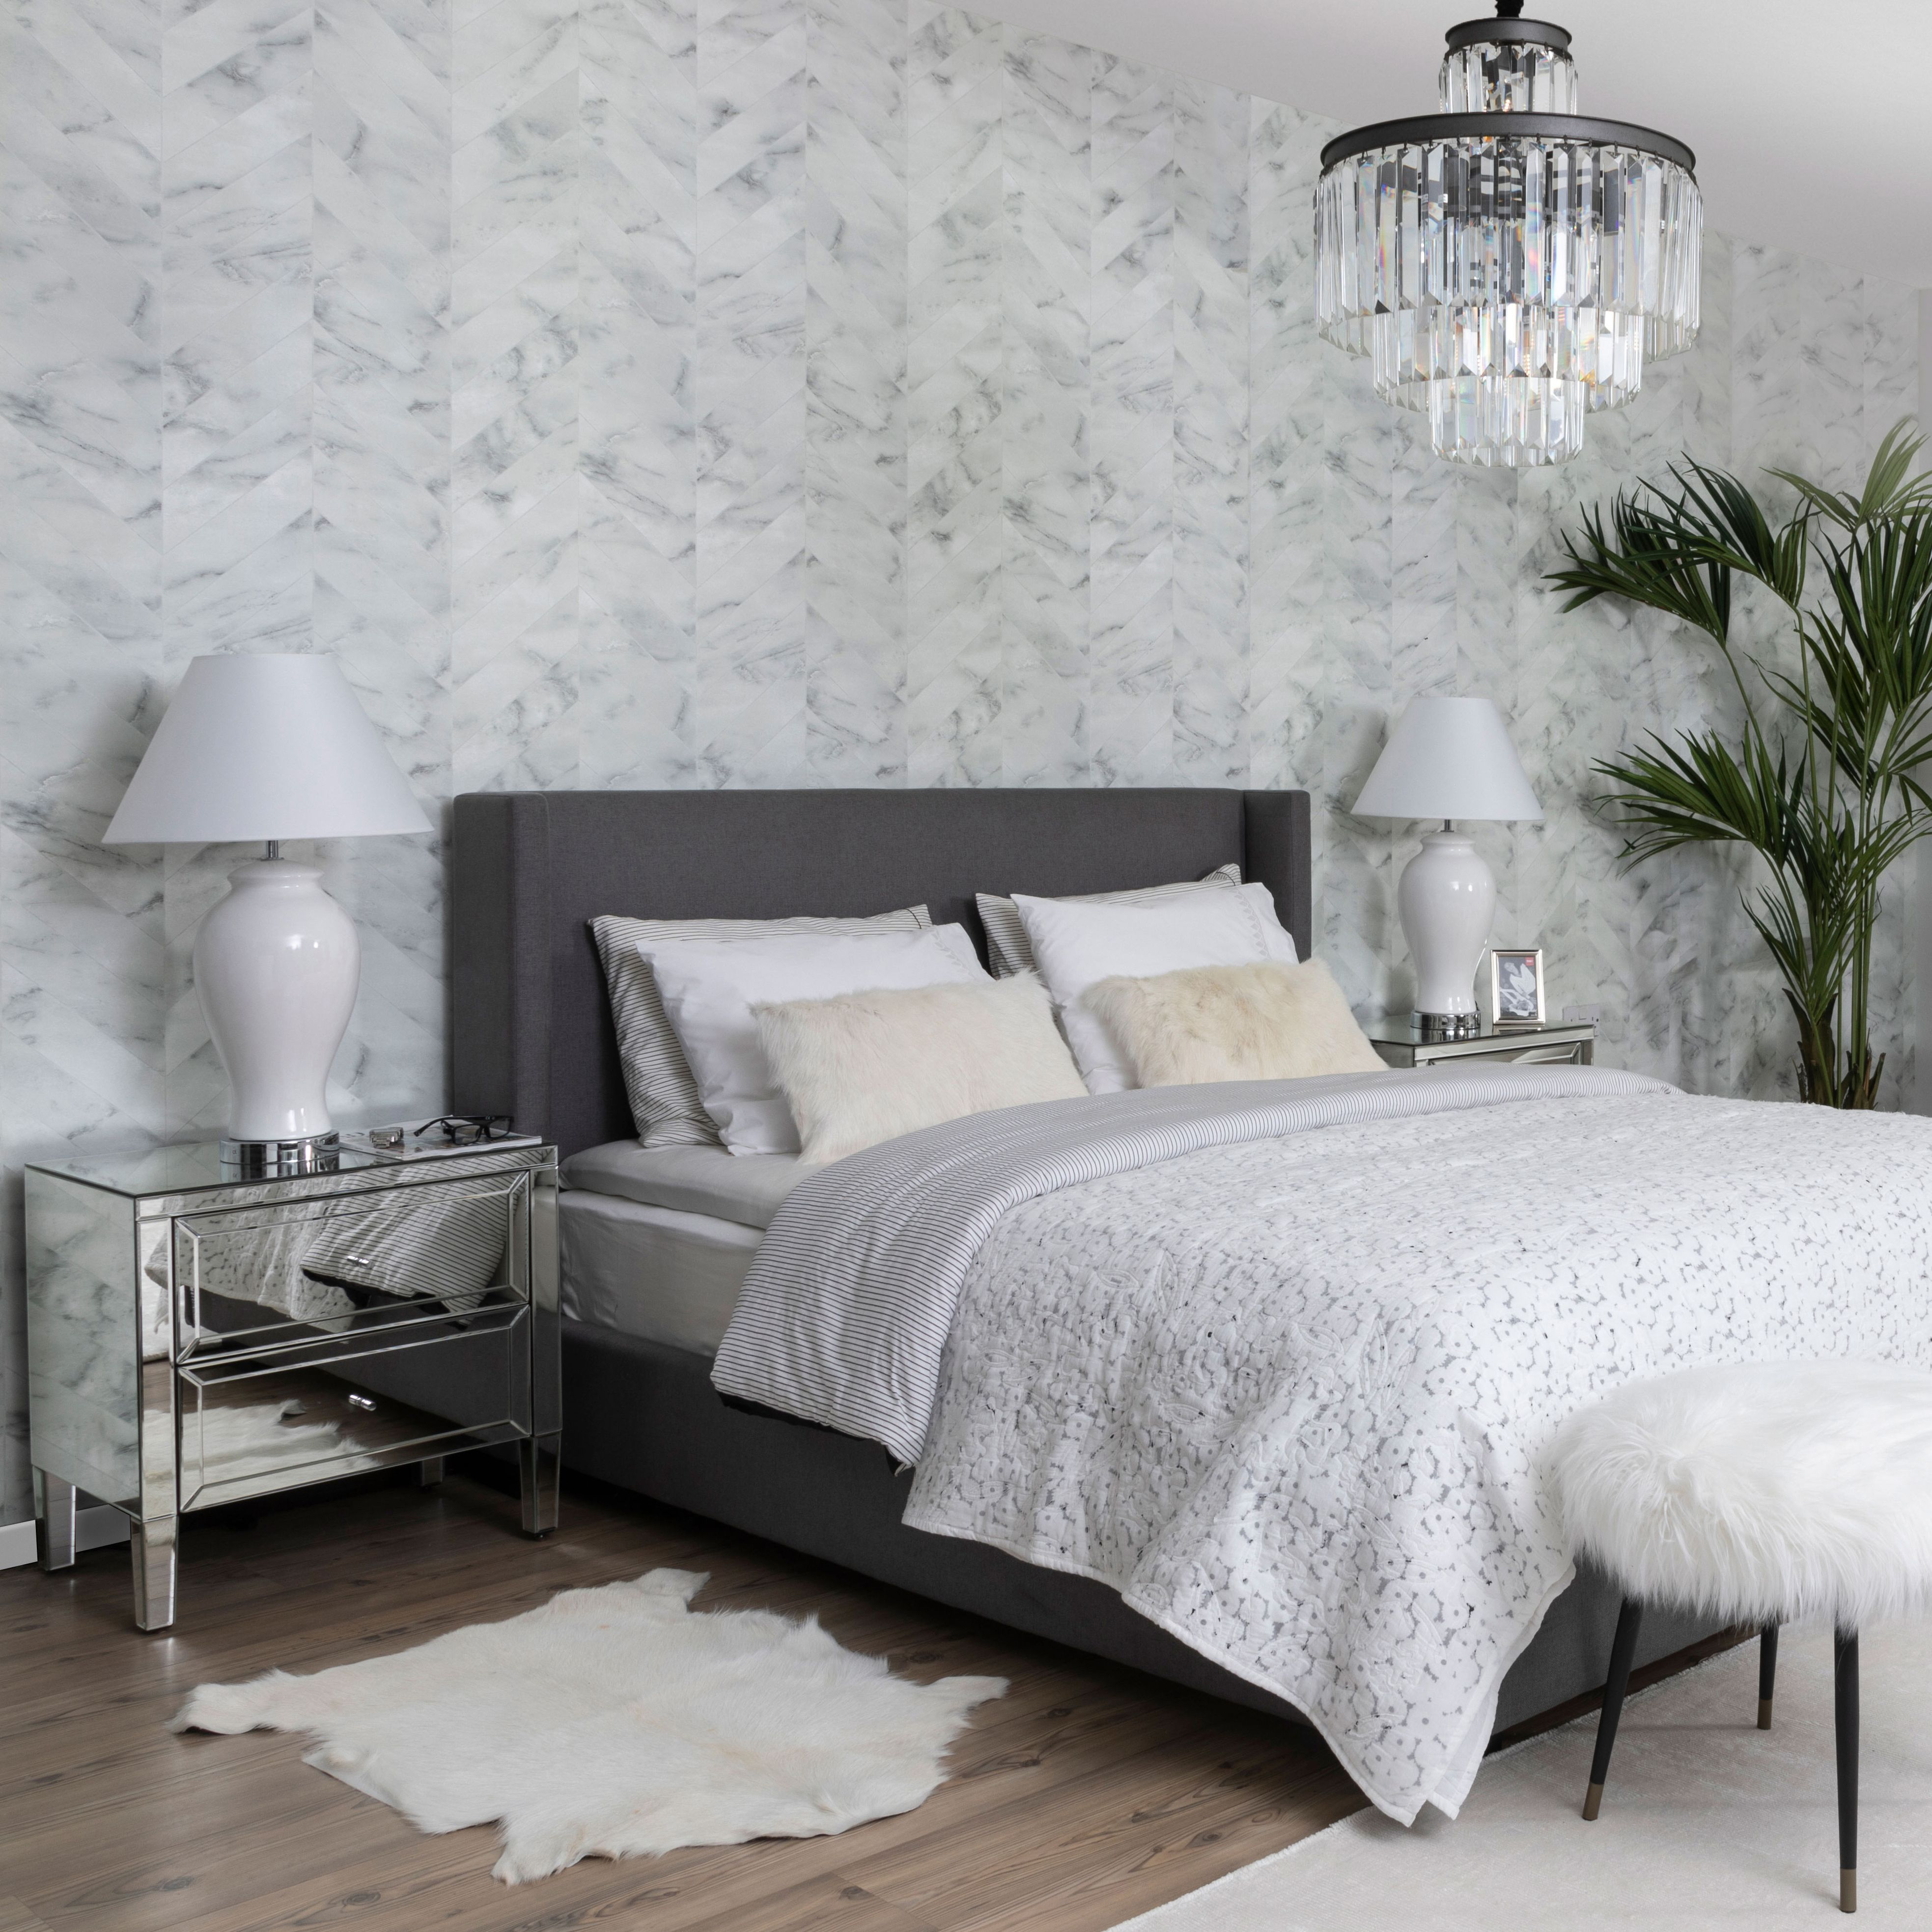 A sleek and calm bedroom makes the best sleep Black and